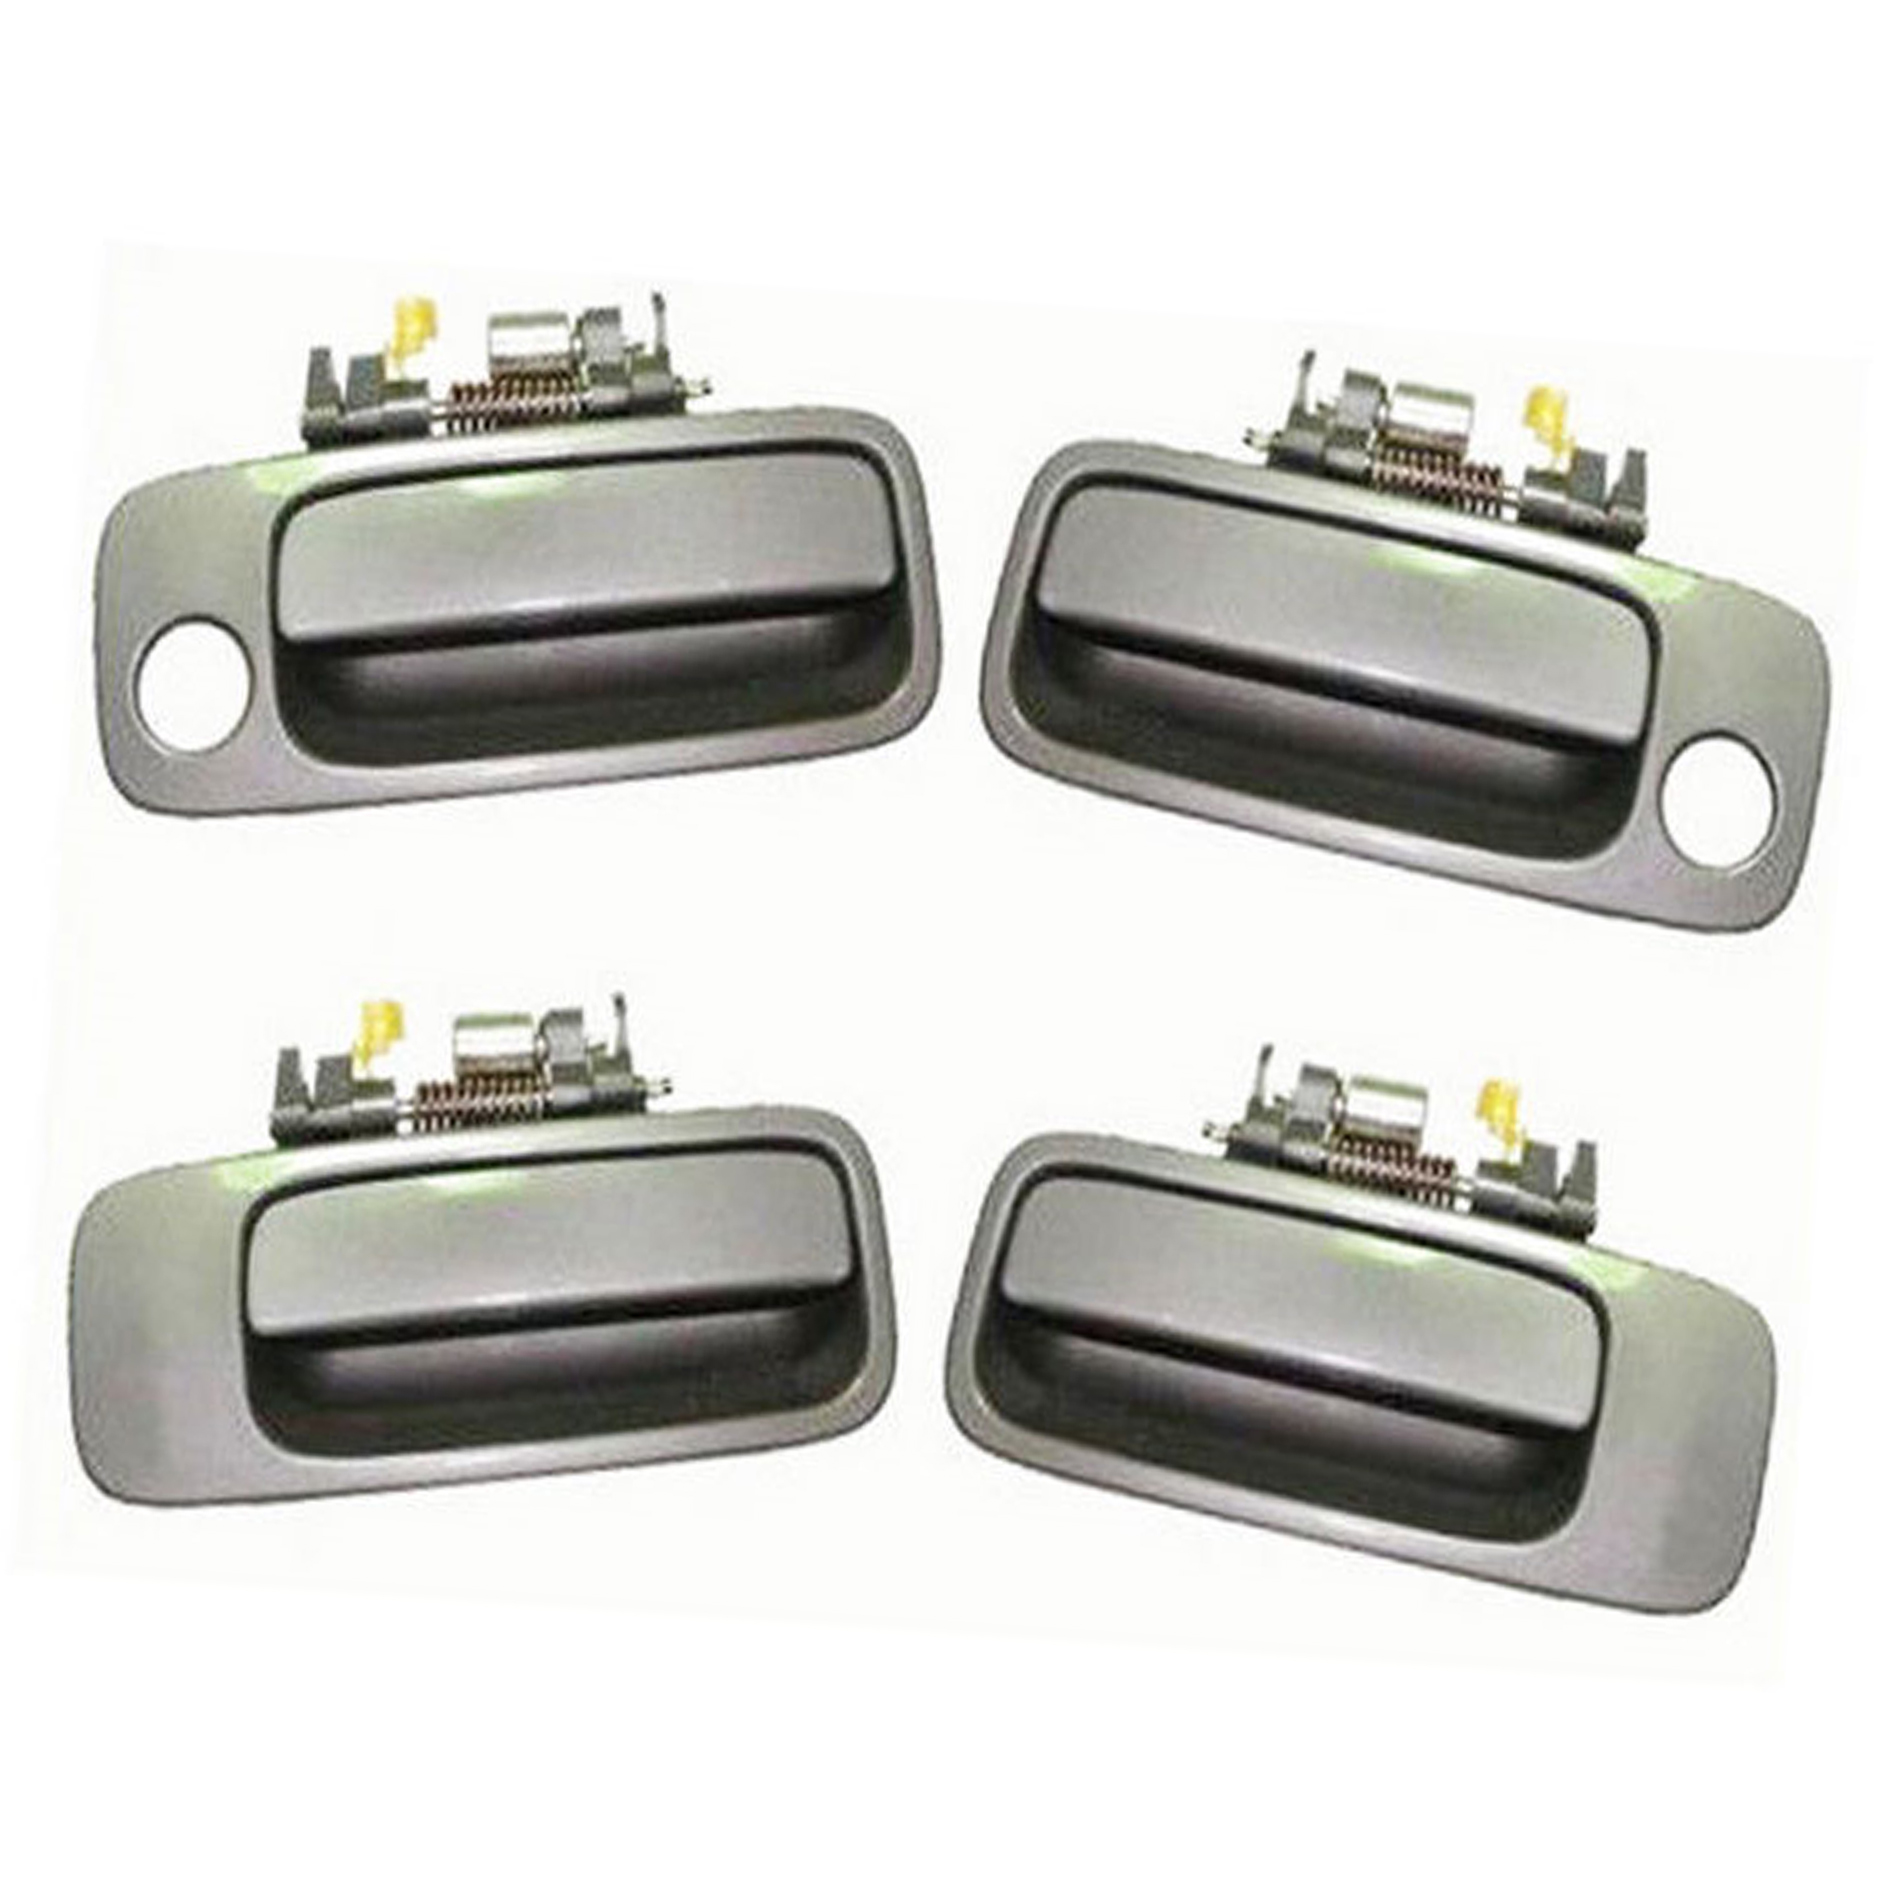 Front Right Side Outside Door Handle for 1997-2001 Toyota Camry 4N7 Sable Pearl